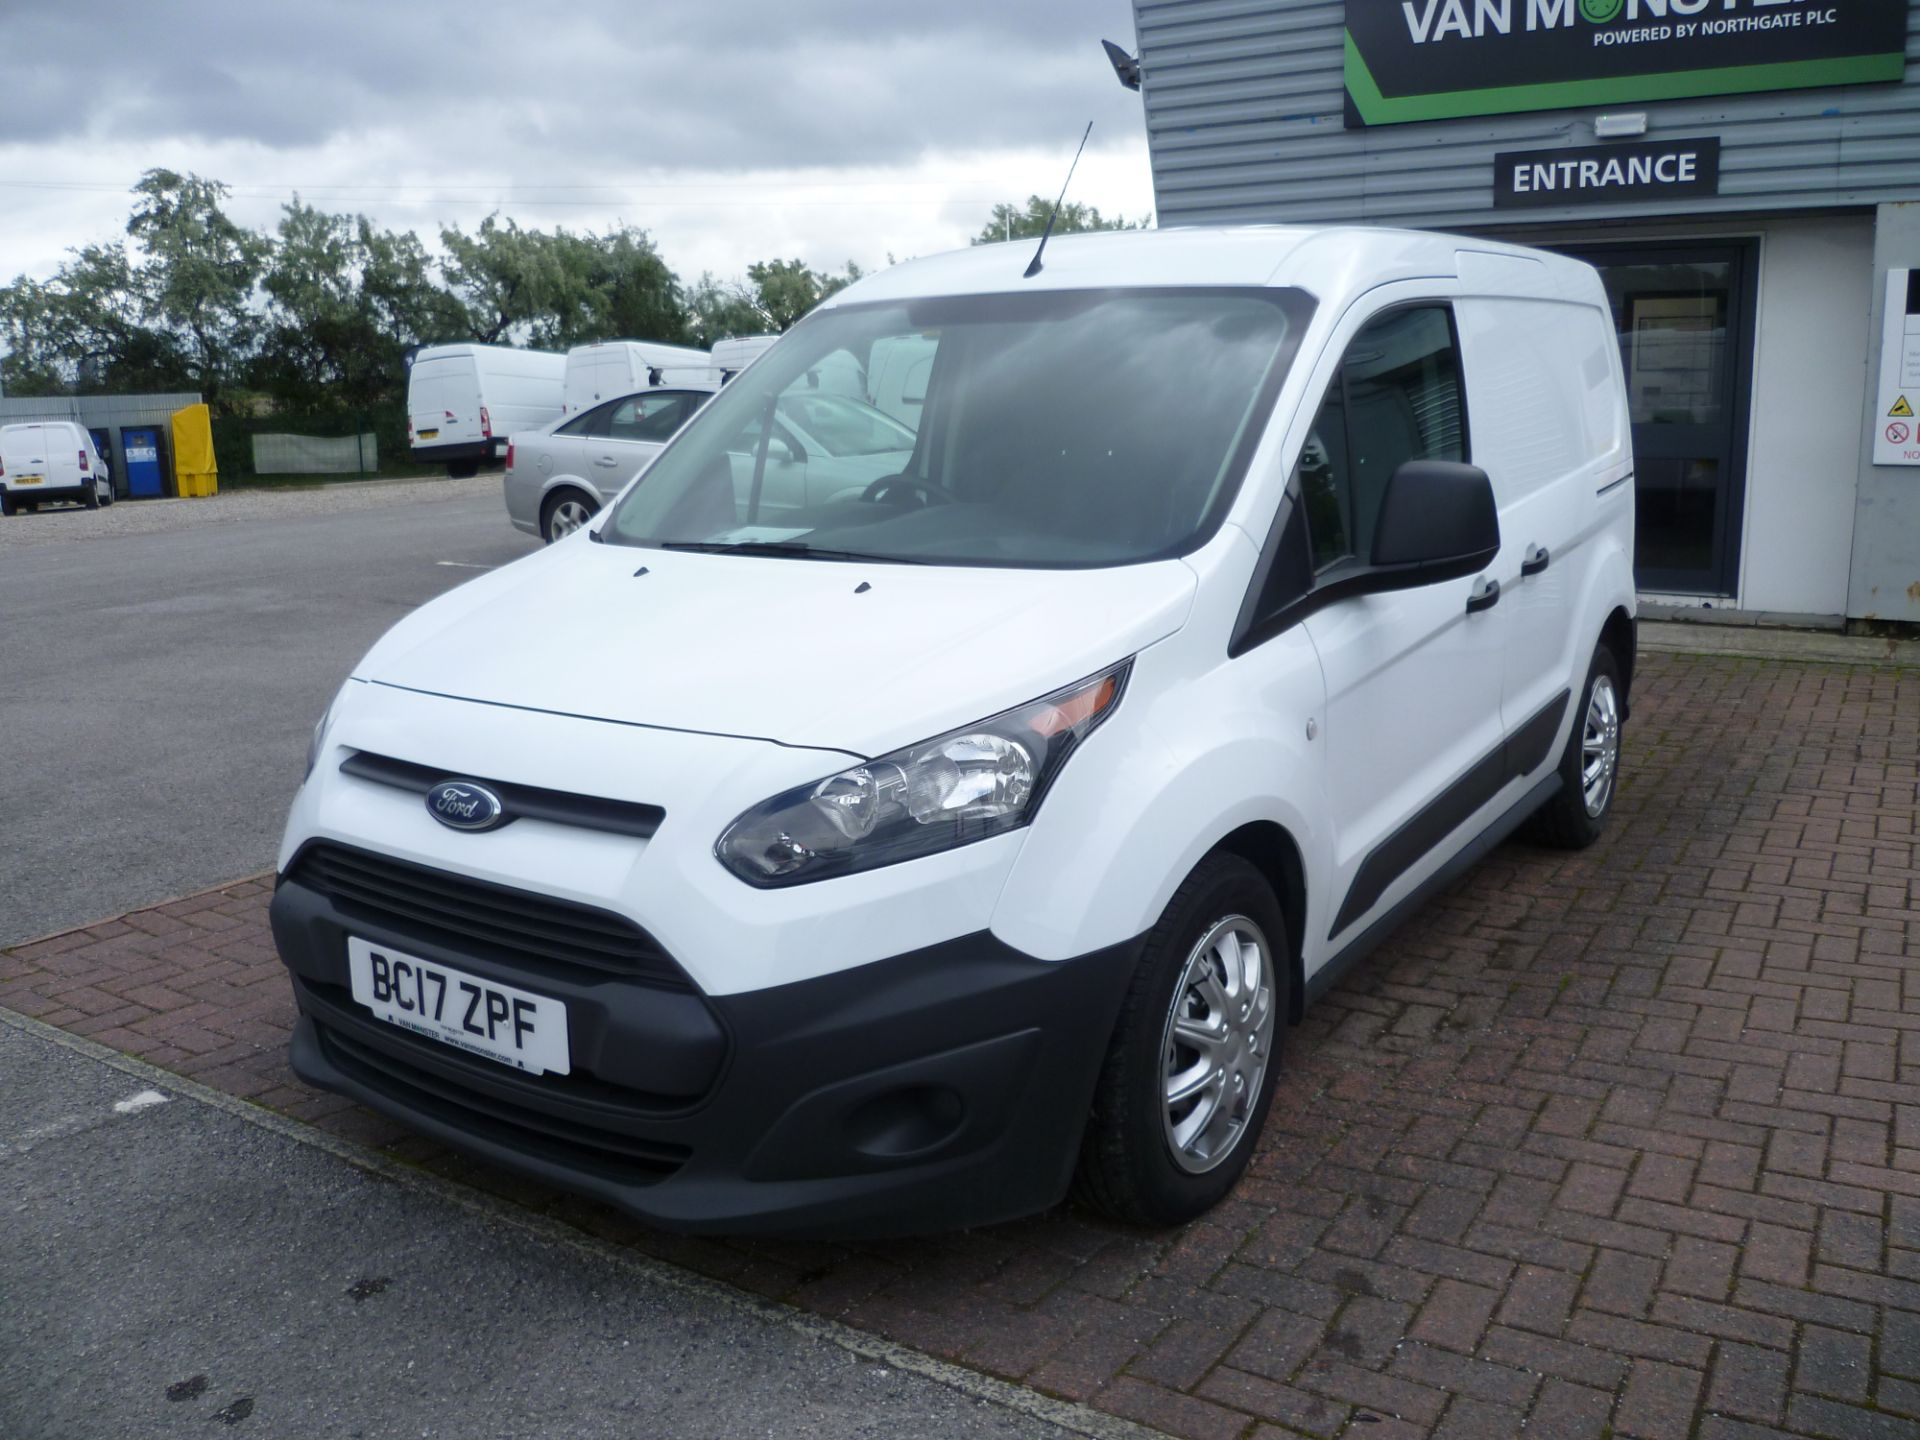 2017 Ford Transit Connect T200 L1 H1 1.5TDCI 75PS EURO 6 (BC17ZPF) Image 2